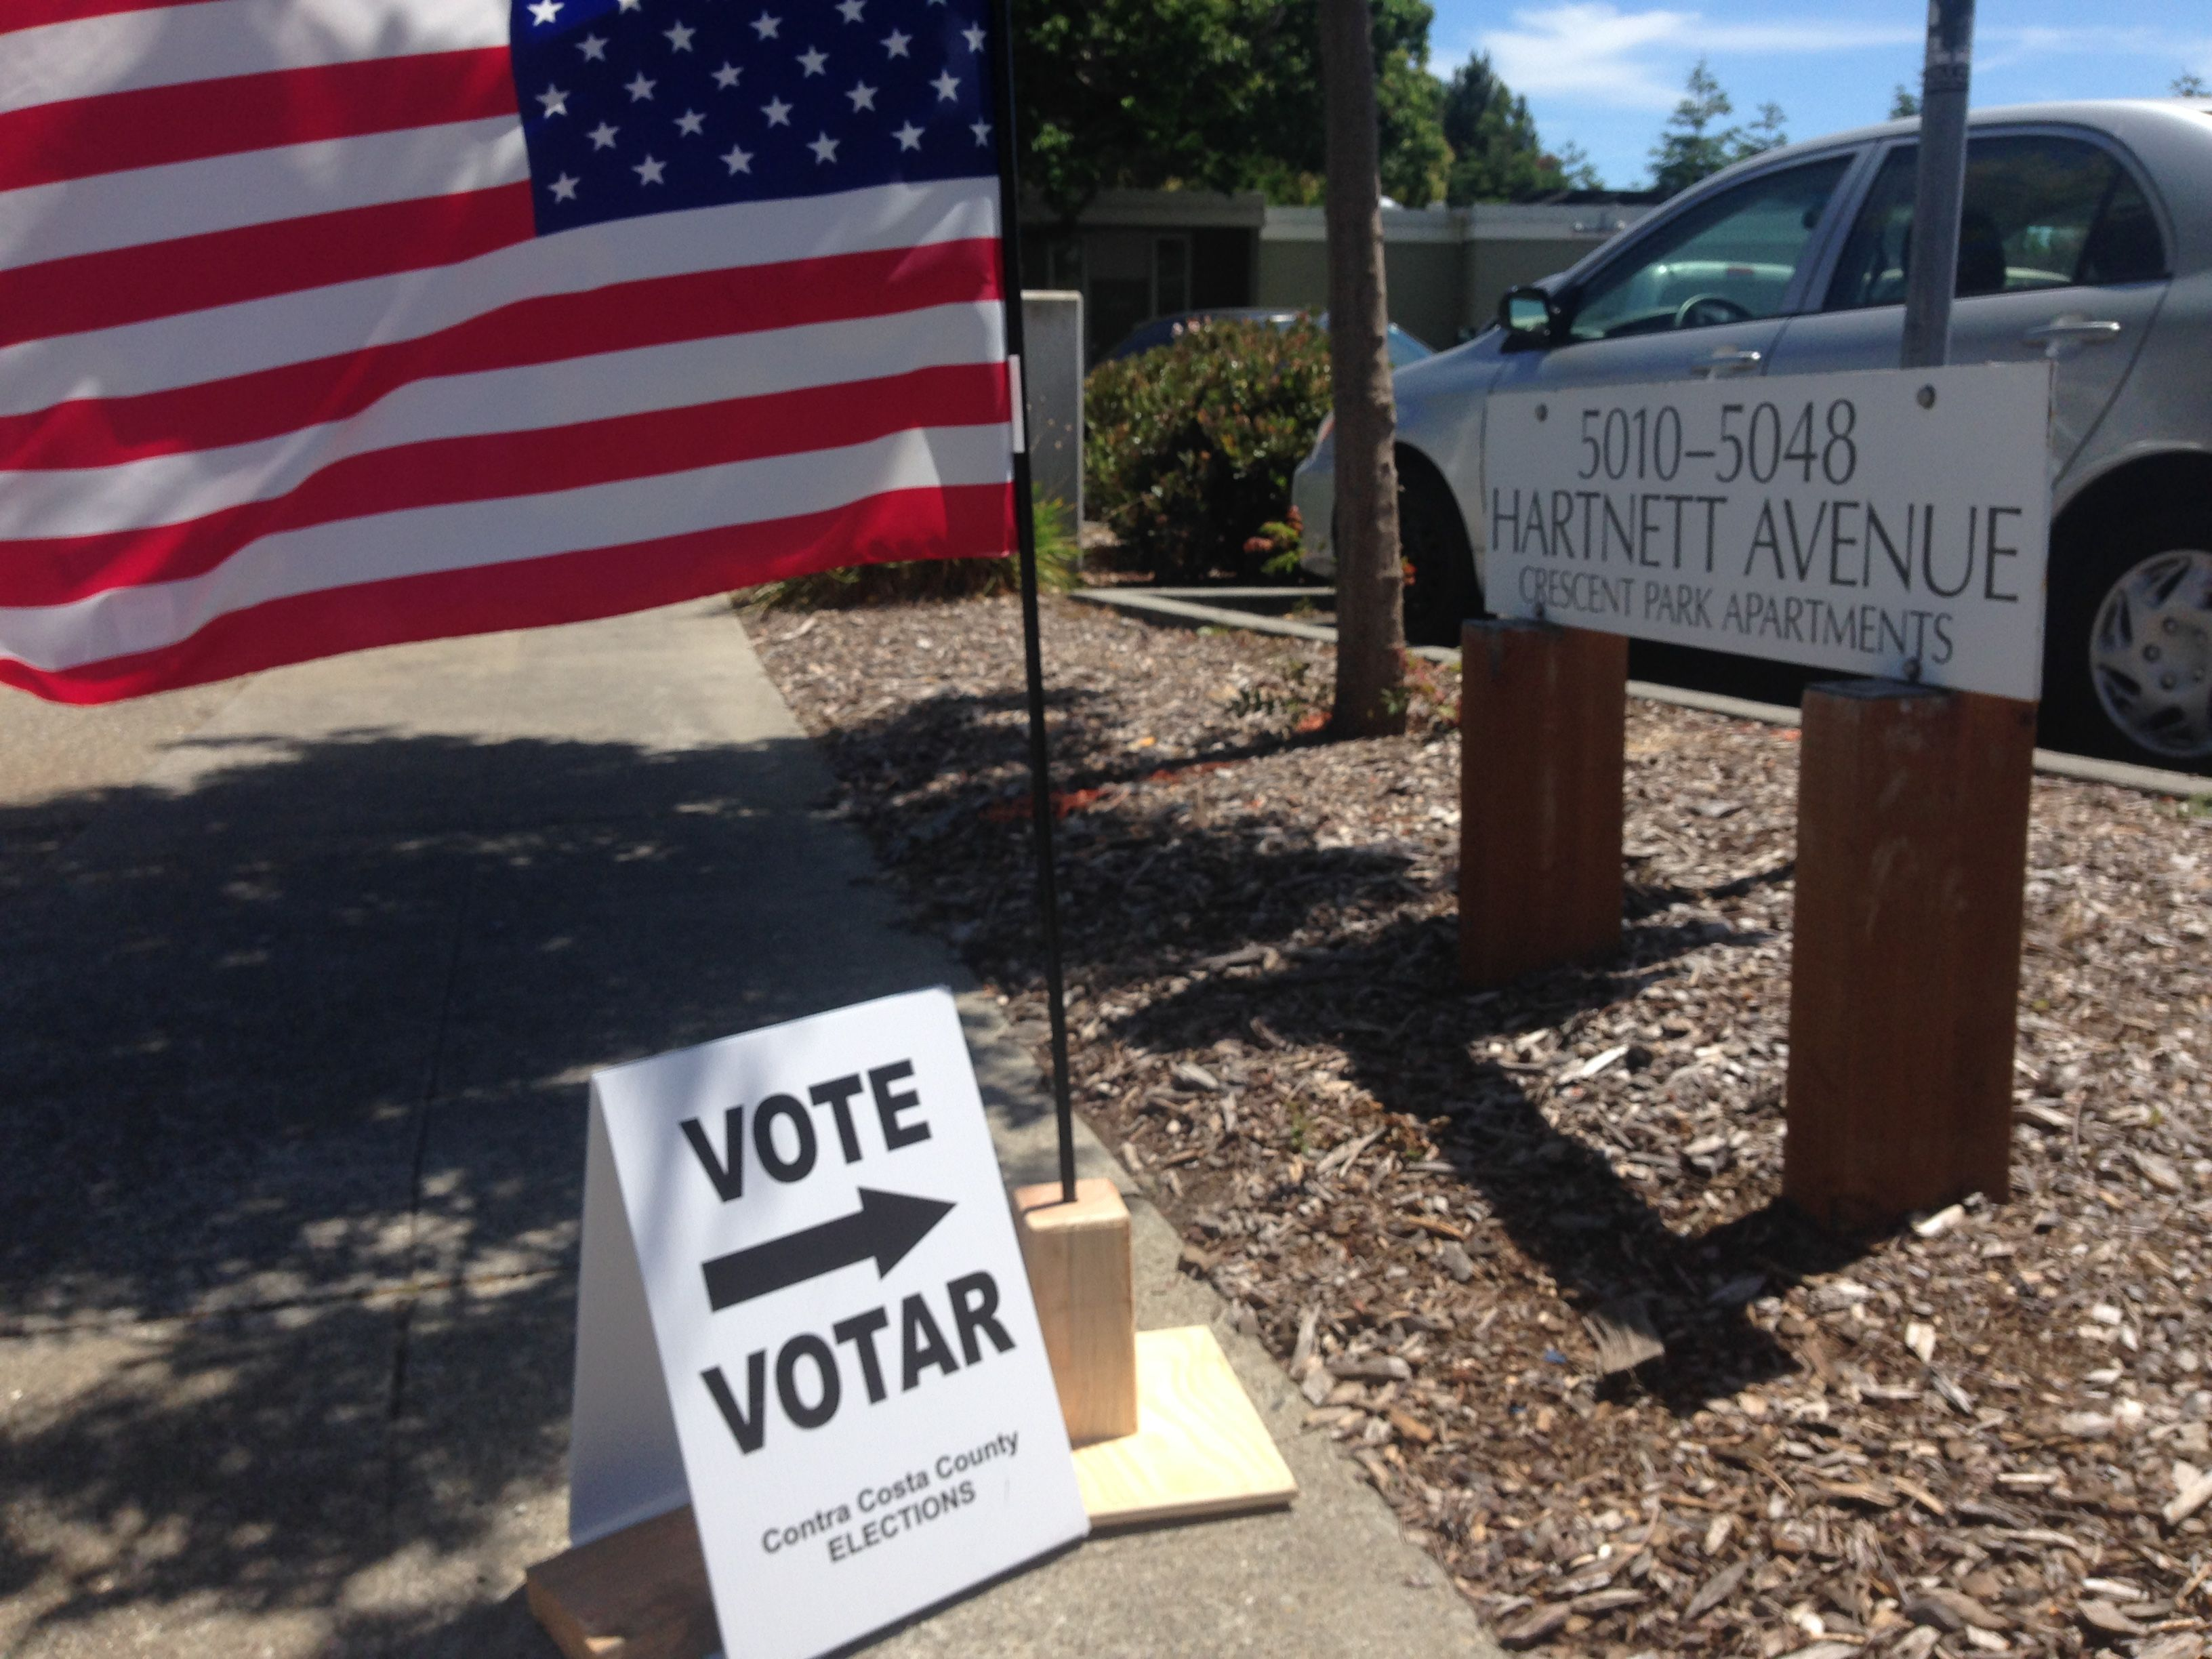 Richmond voters turned out at polling places to vote on two local measures N and O.